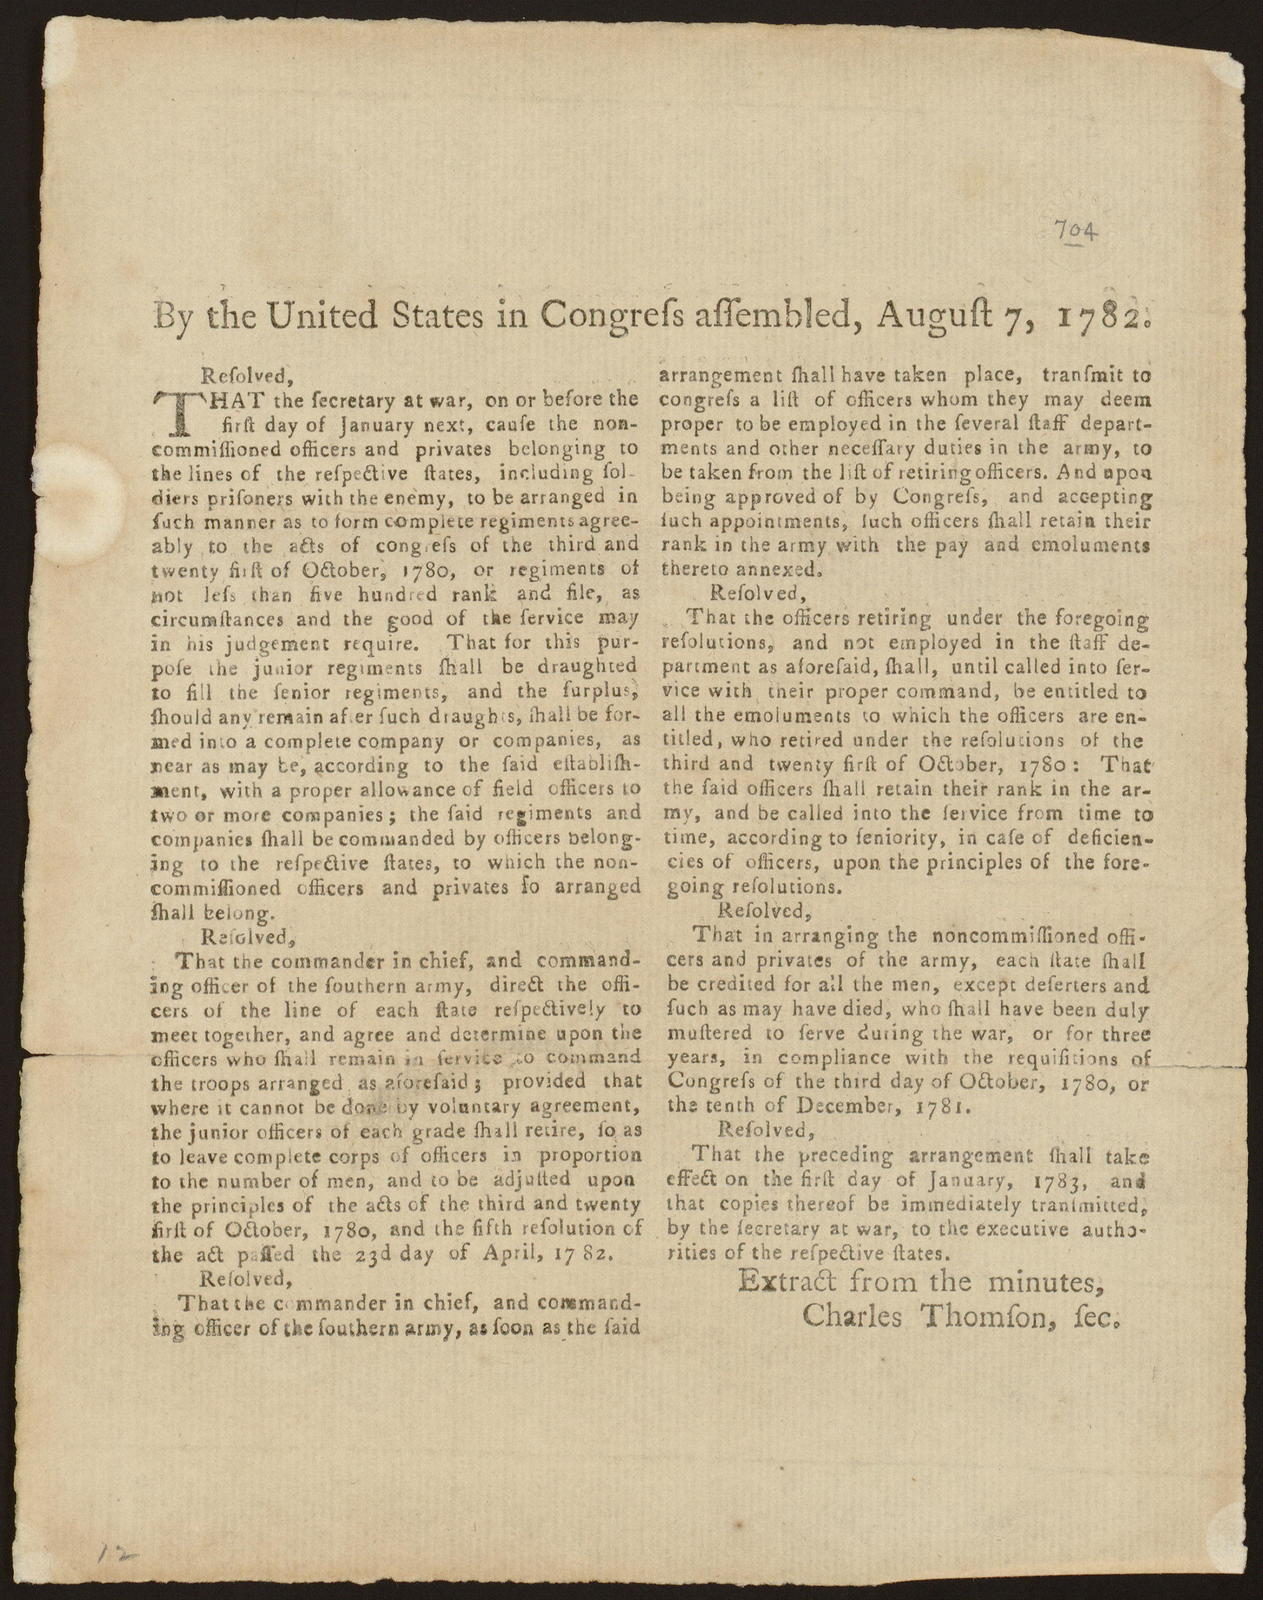 By the United States in Congress assembled, August 7, 1782 : Resolved, that the secretary at war, on or before the first day of January next, cause the non-commissioned officers and privates belonging to the lines of the respective states, including soldiers prisoners with the enemy, to be arranged in such a manner as to form complete regiments ...